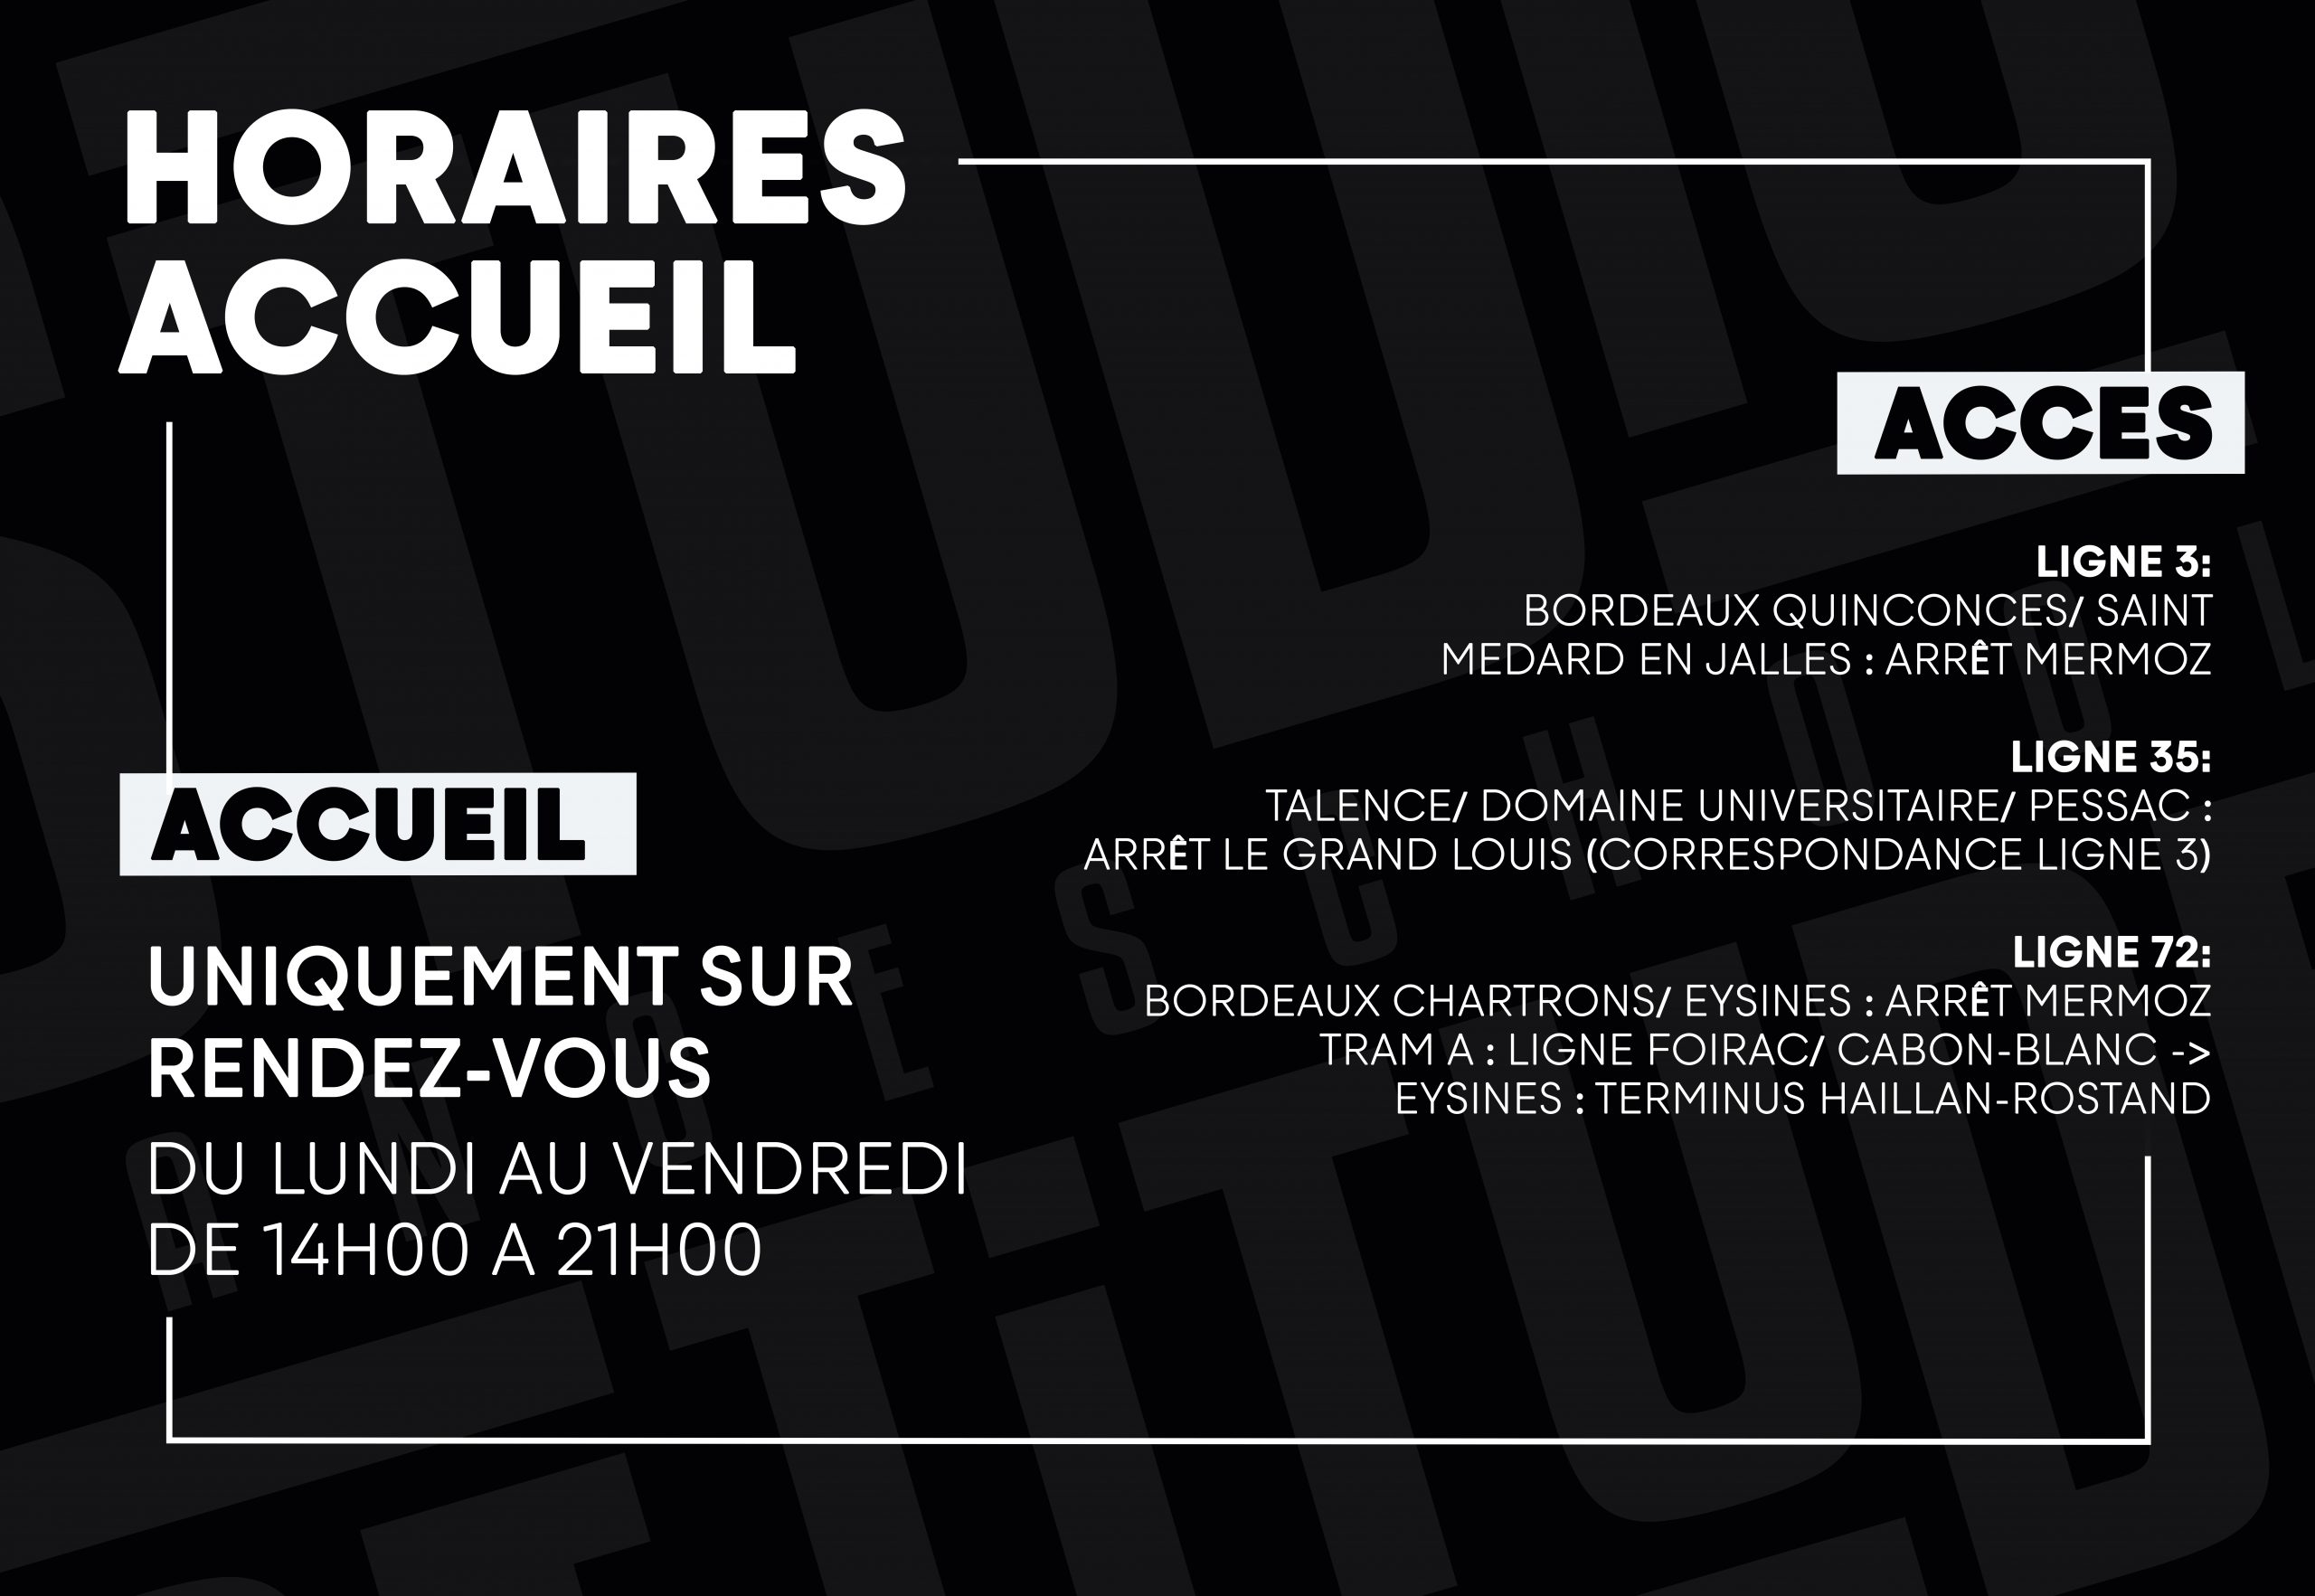 Horraires-Accueil-scaled